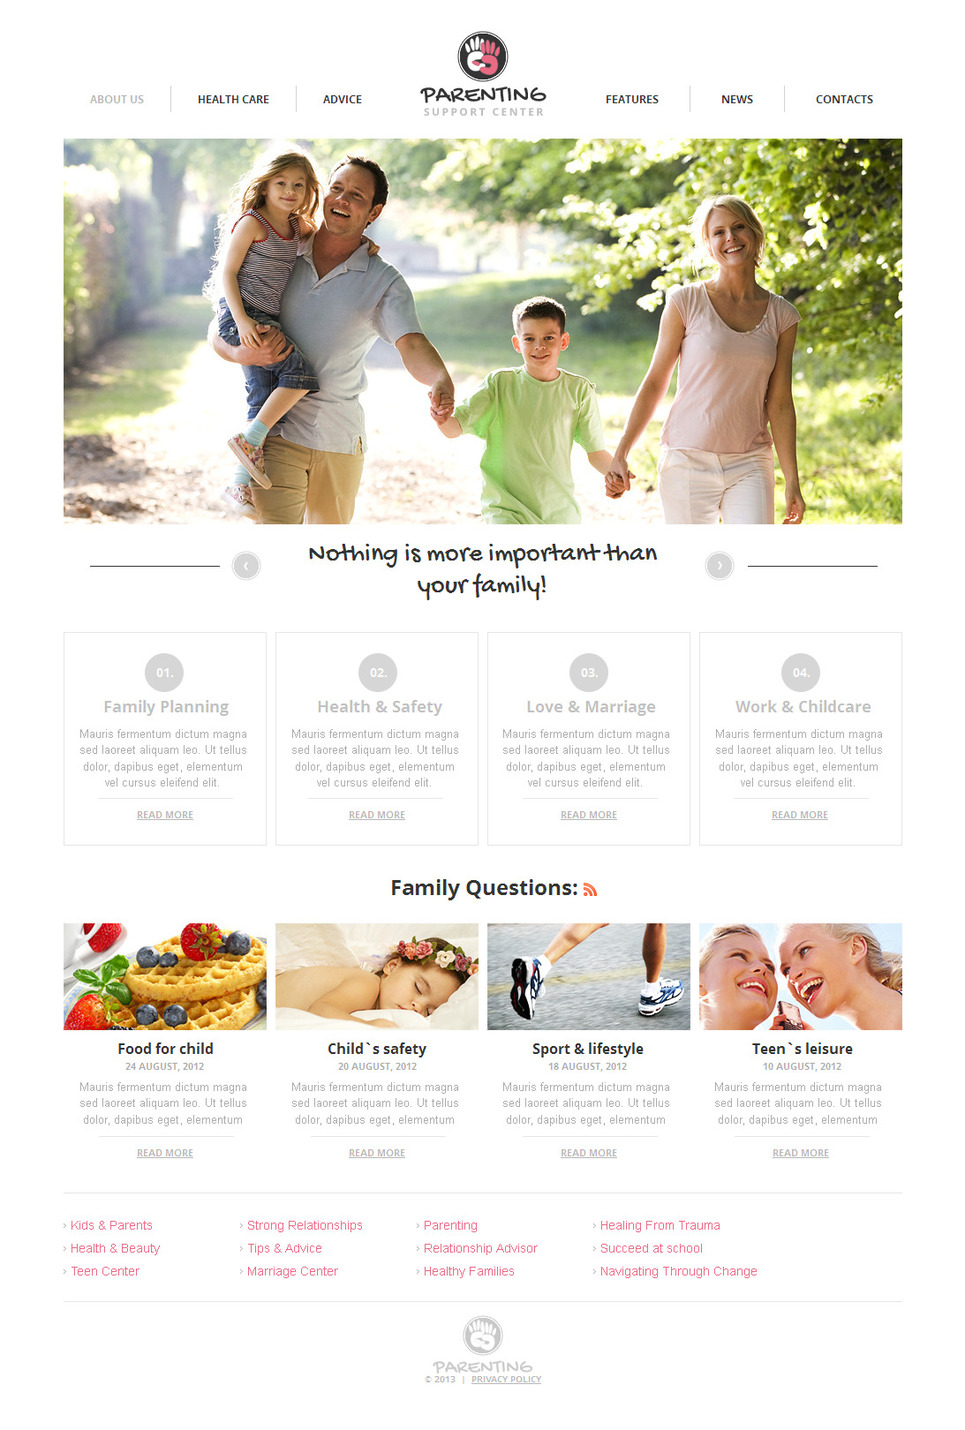 Family Website Template Designed in Light Colors - image